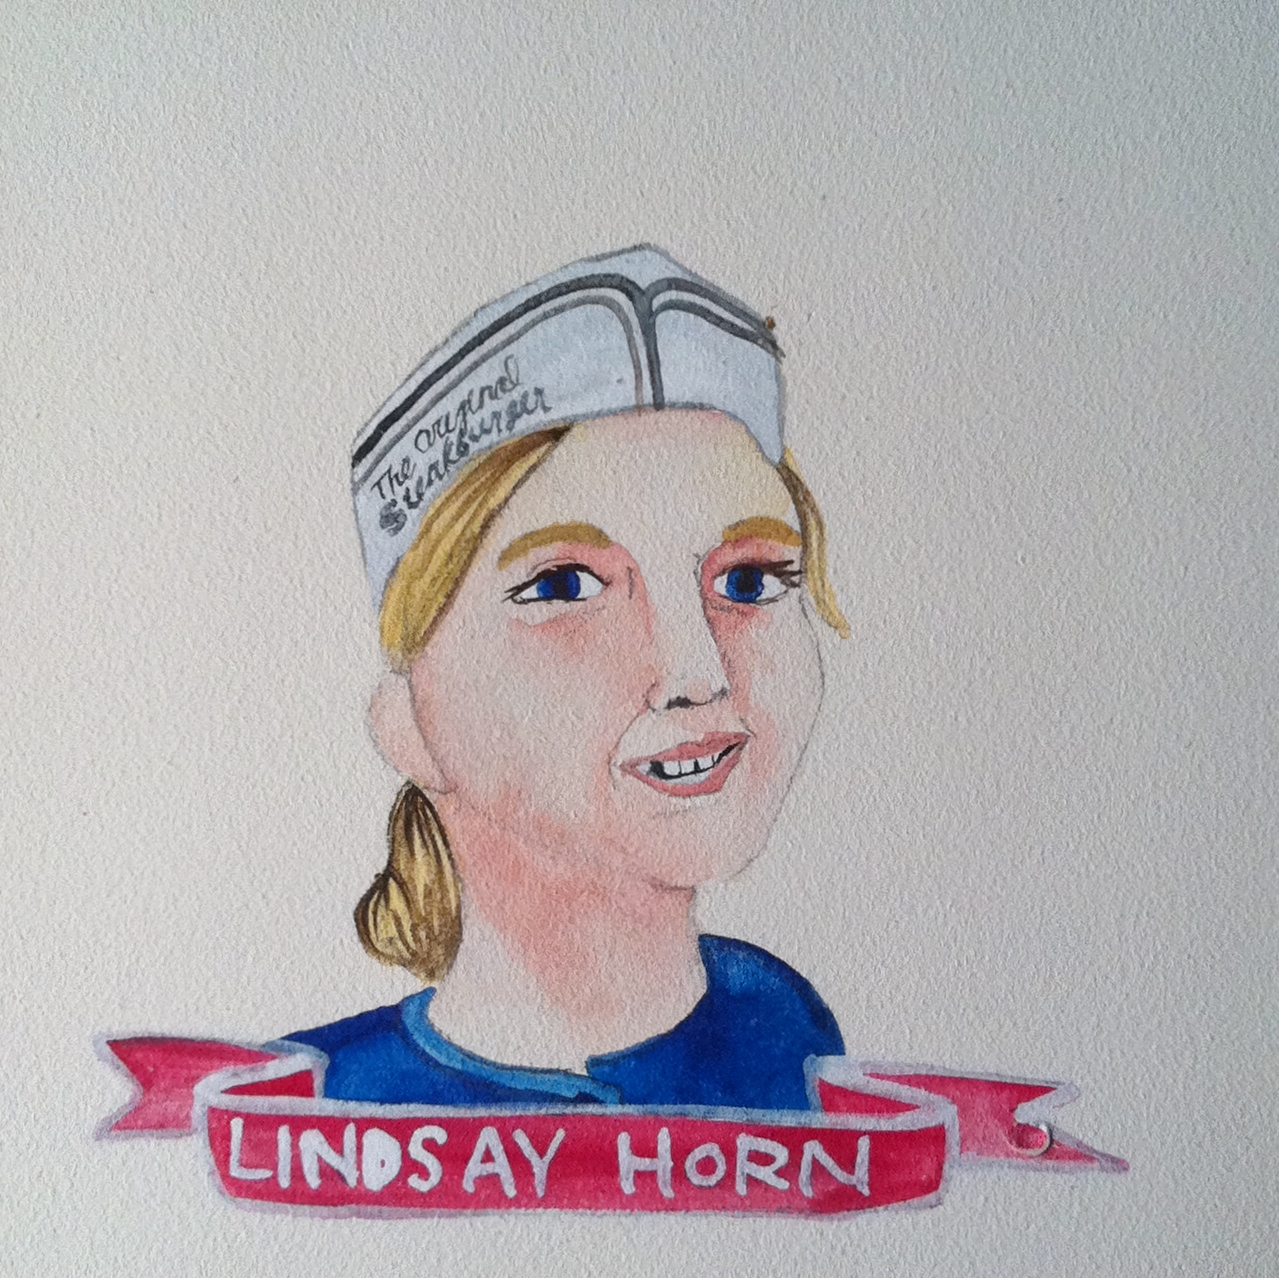 Talent Loves Company at Barbara Archer Gallery: 365 portraits by Lydia Walls - Lindsay Horn